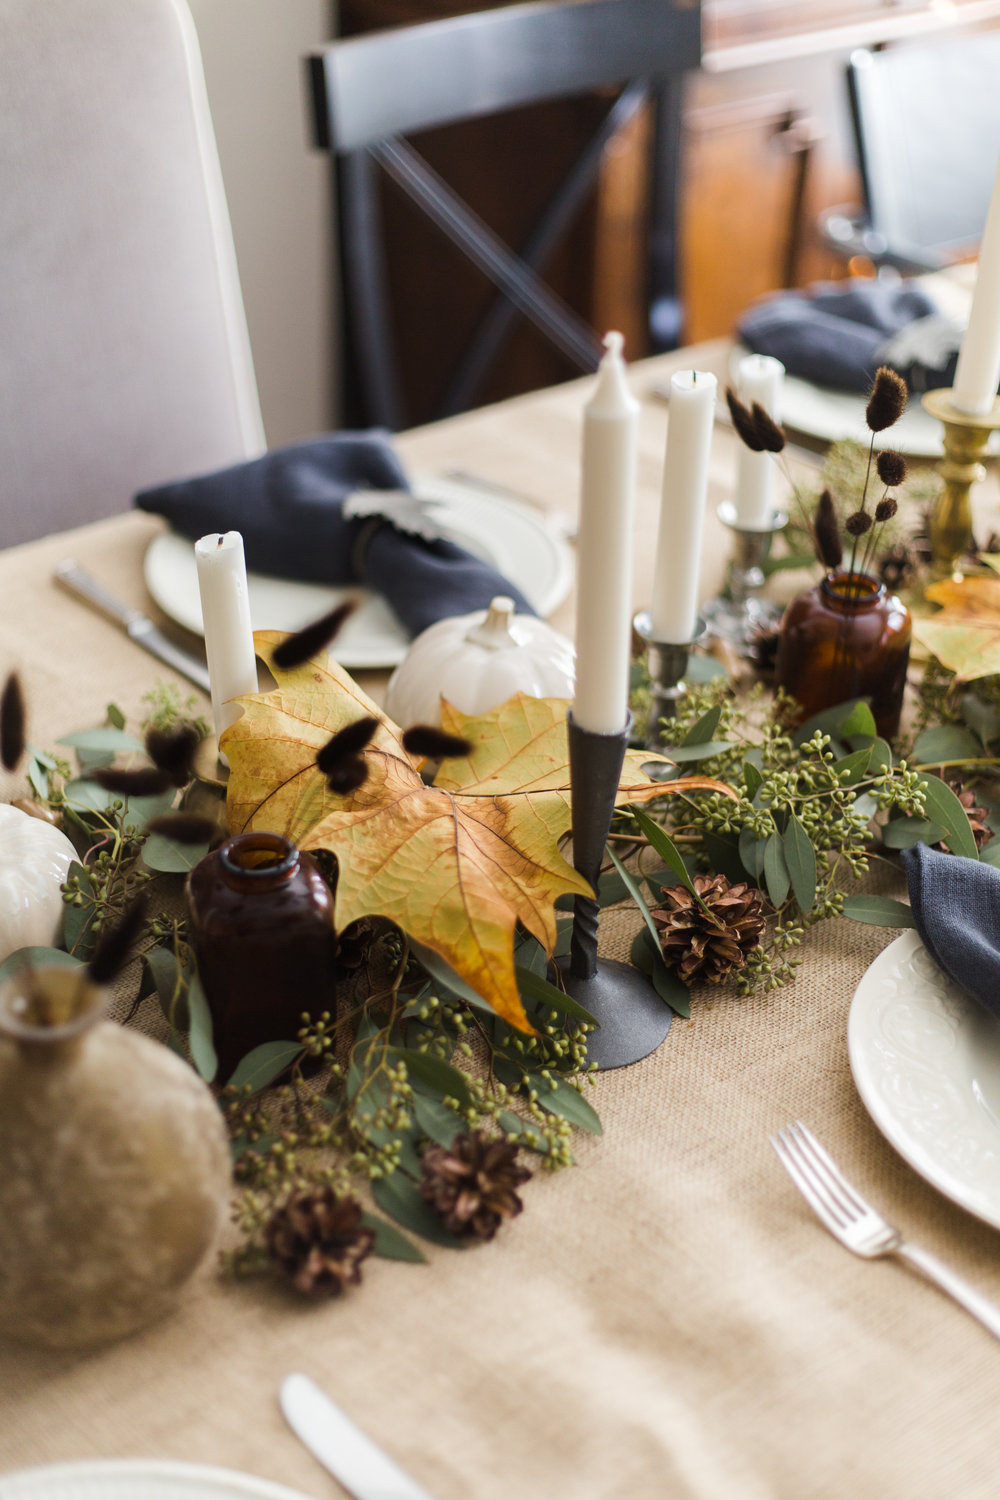 Thanksgiving / Fall Tabletop Decor w/ burlap tablecloth, creamware, pewter and brass candlesticks, eucalyptus and fall leaves / pumpkins #tablesetting #thanksgivingtablesetting #thanksgivingcenterpiece #falldecor #falltabletop